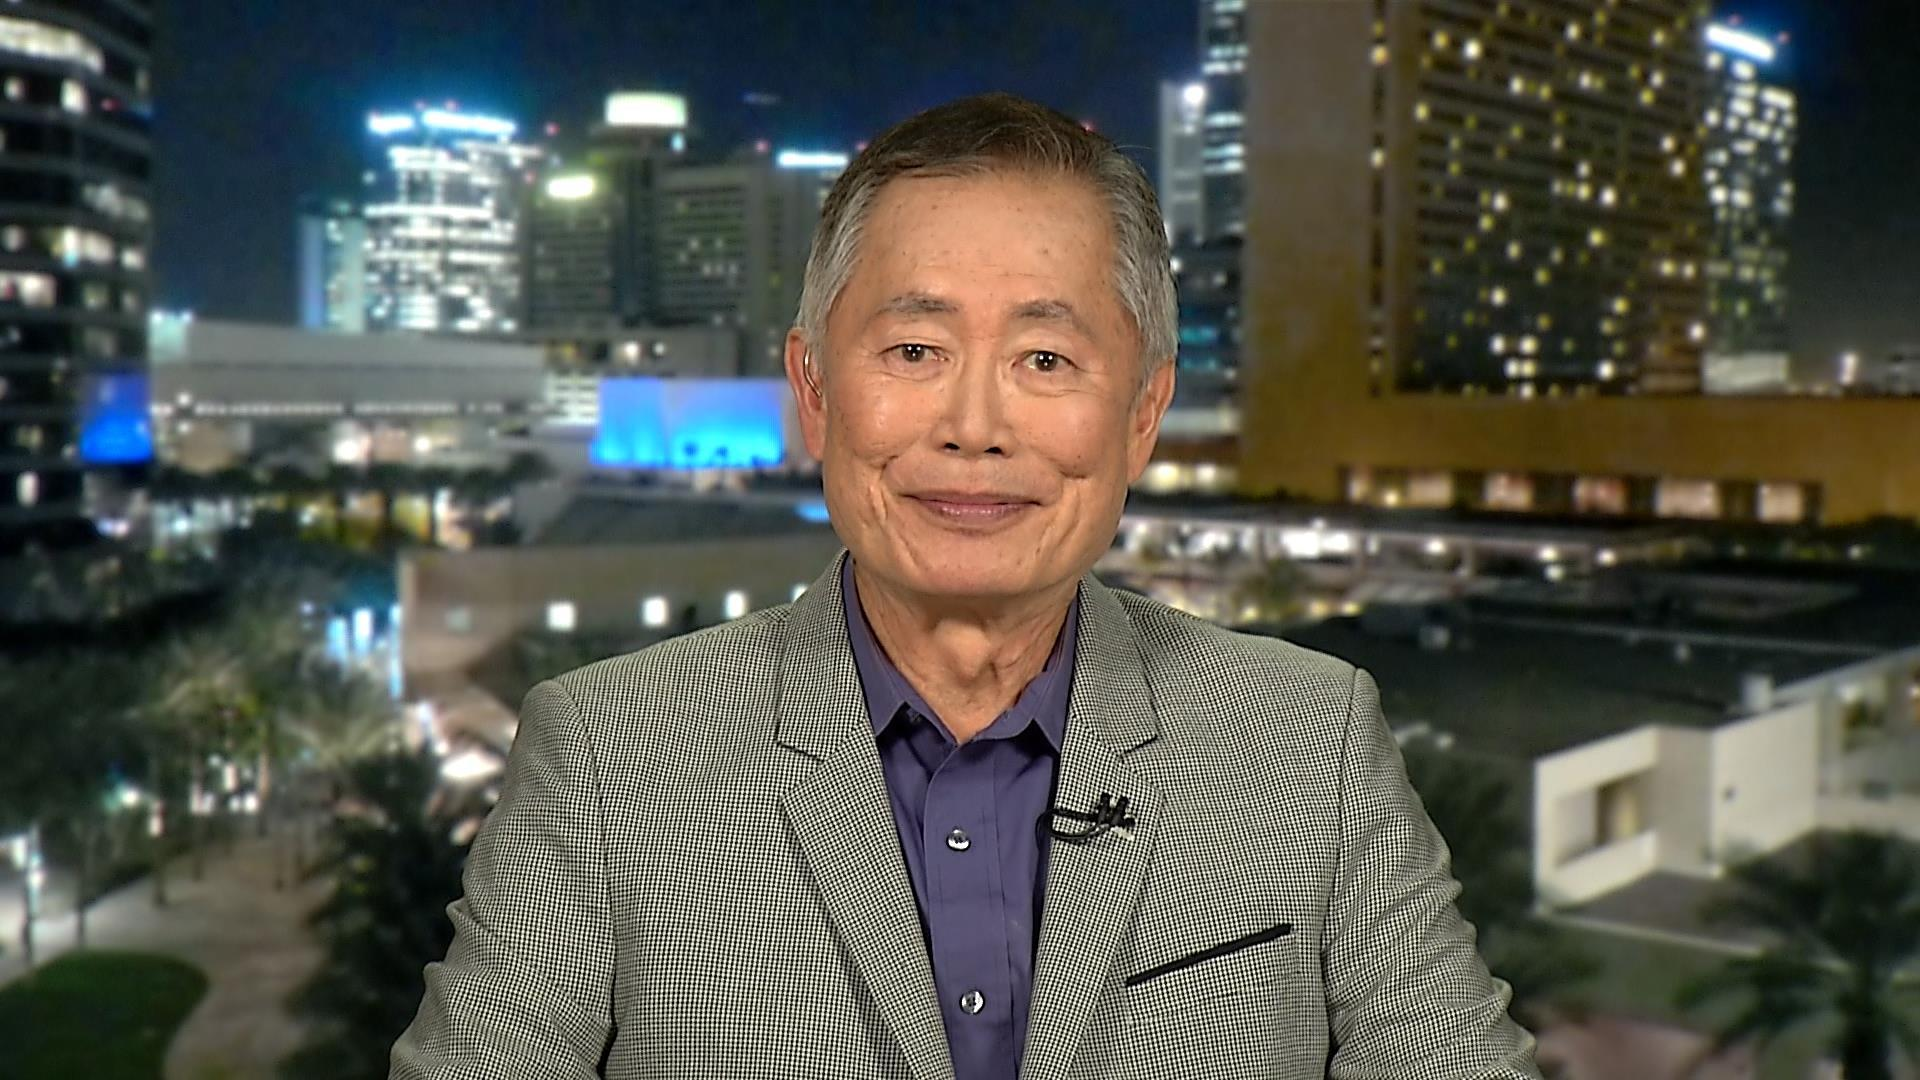 George Takei on Marriage and Donald Trump